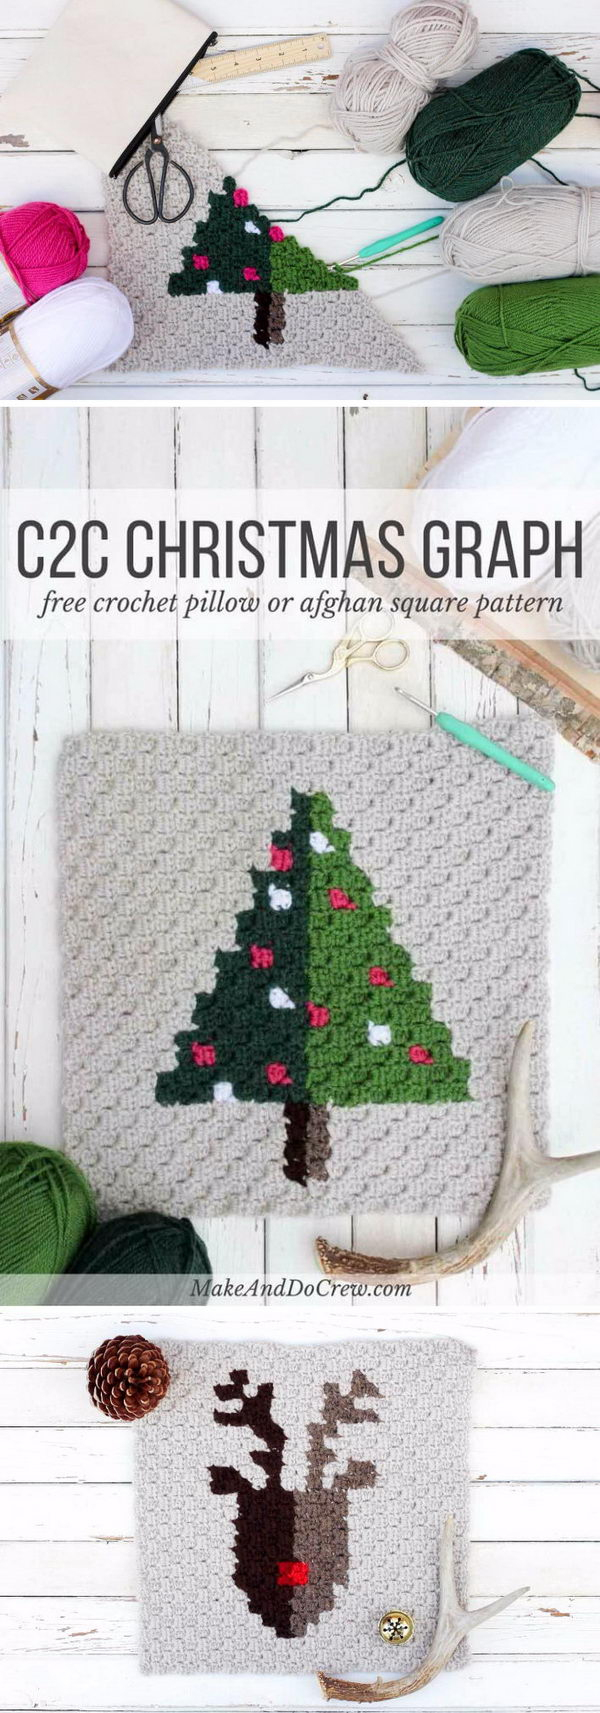 25+ Free Christmas Crochet Patterns For Beginners - Hative - Free Printable Christmas Crochet Patterns